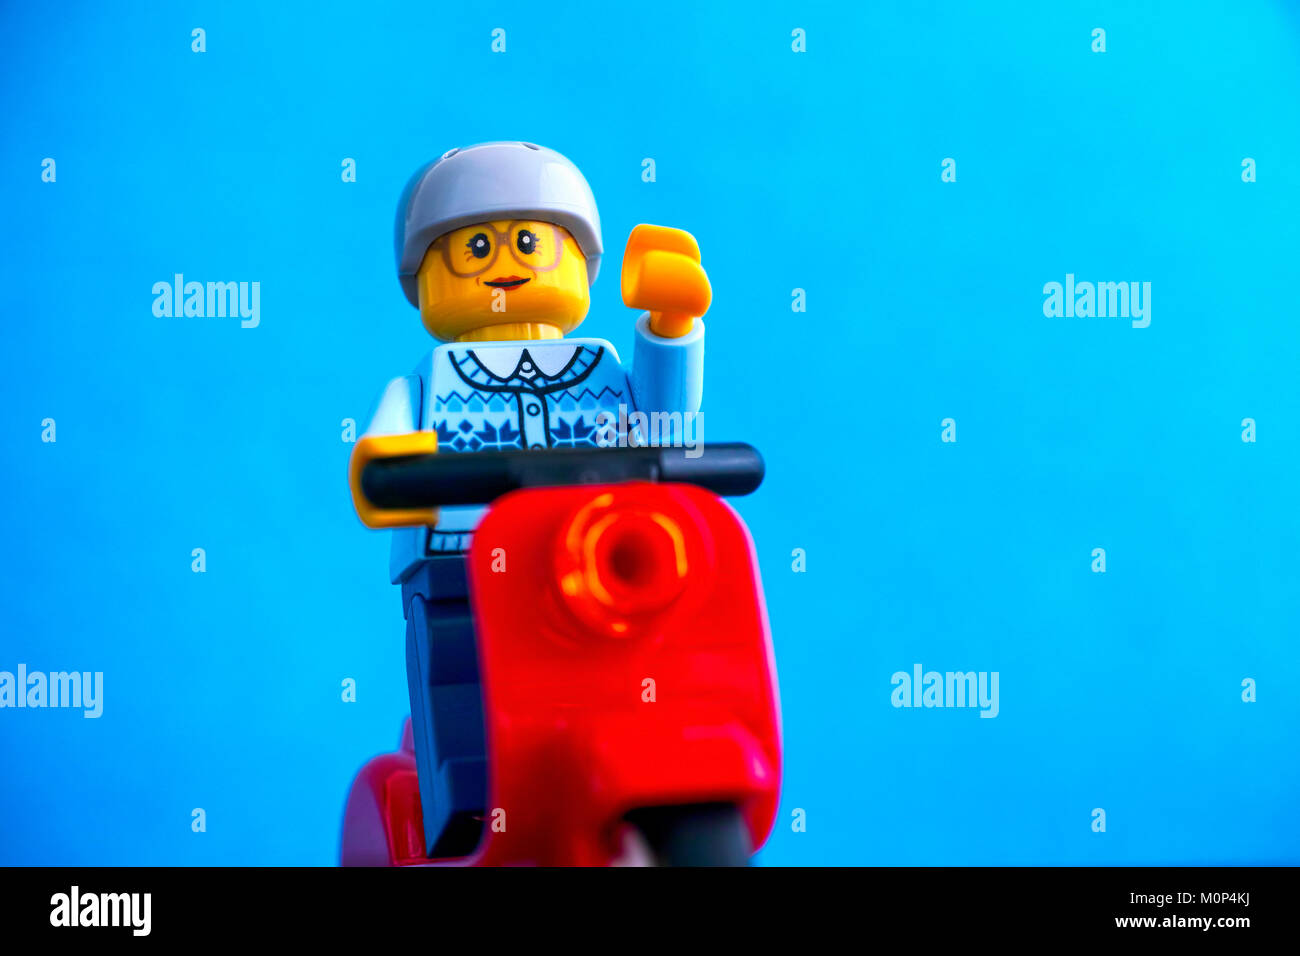 Tambov, Russian Federation - January 13, 2018 Lego old woman minifigure on red scooter. Blue background. Studio - Stock Image